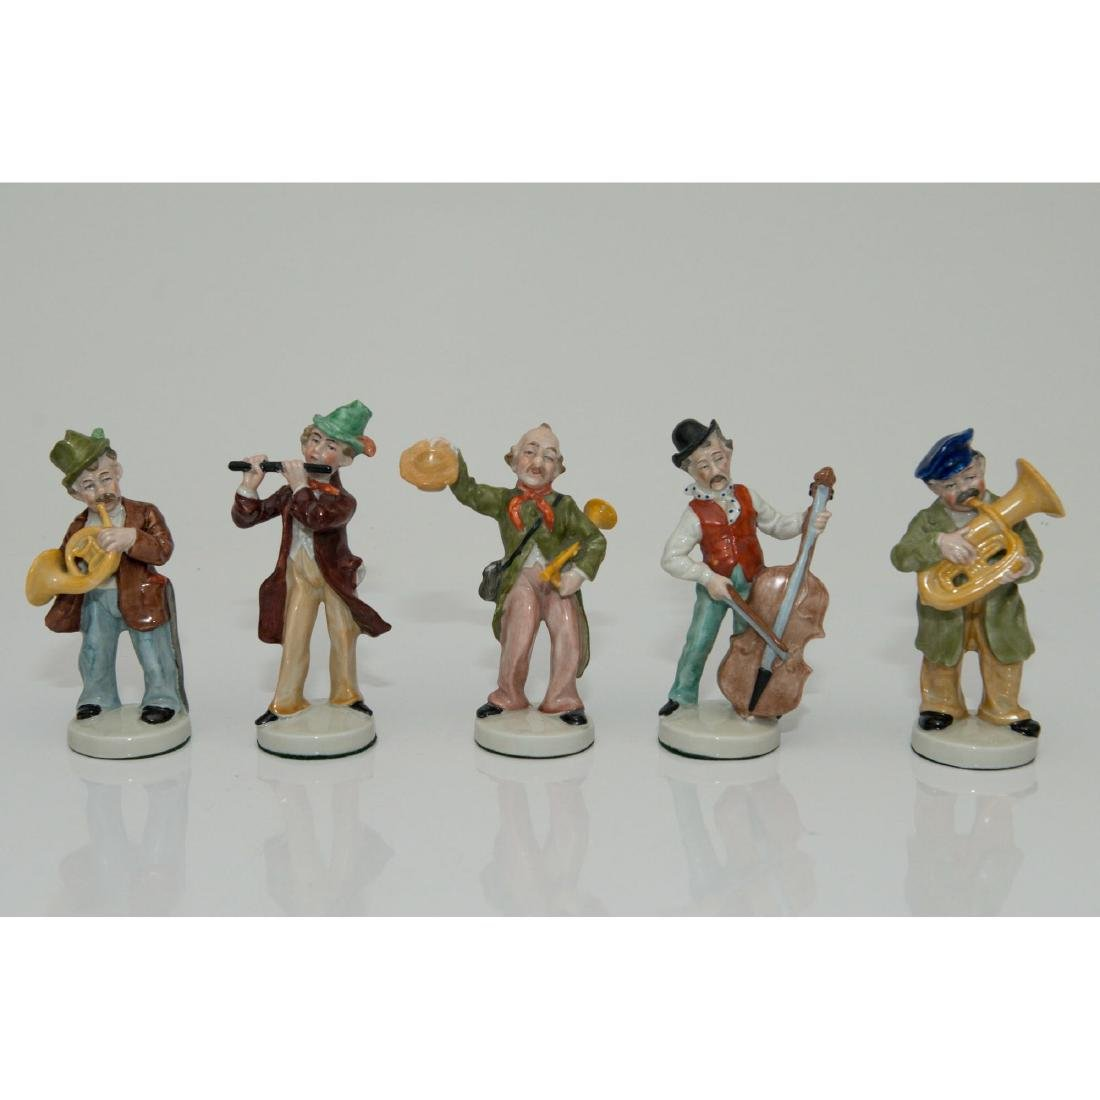 GROUP OF 5 GRAFENTHAL GERMAN ORCHESTRA FIGURINES